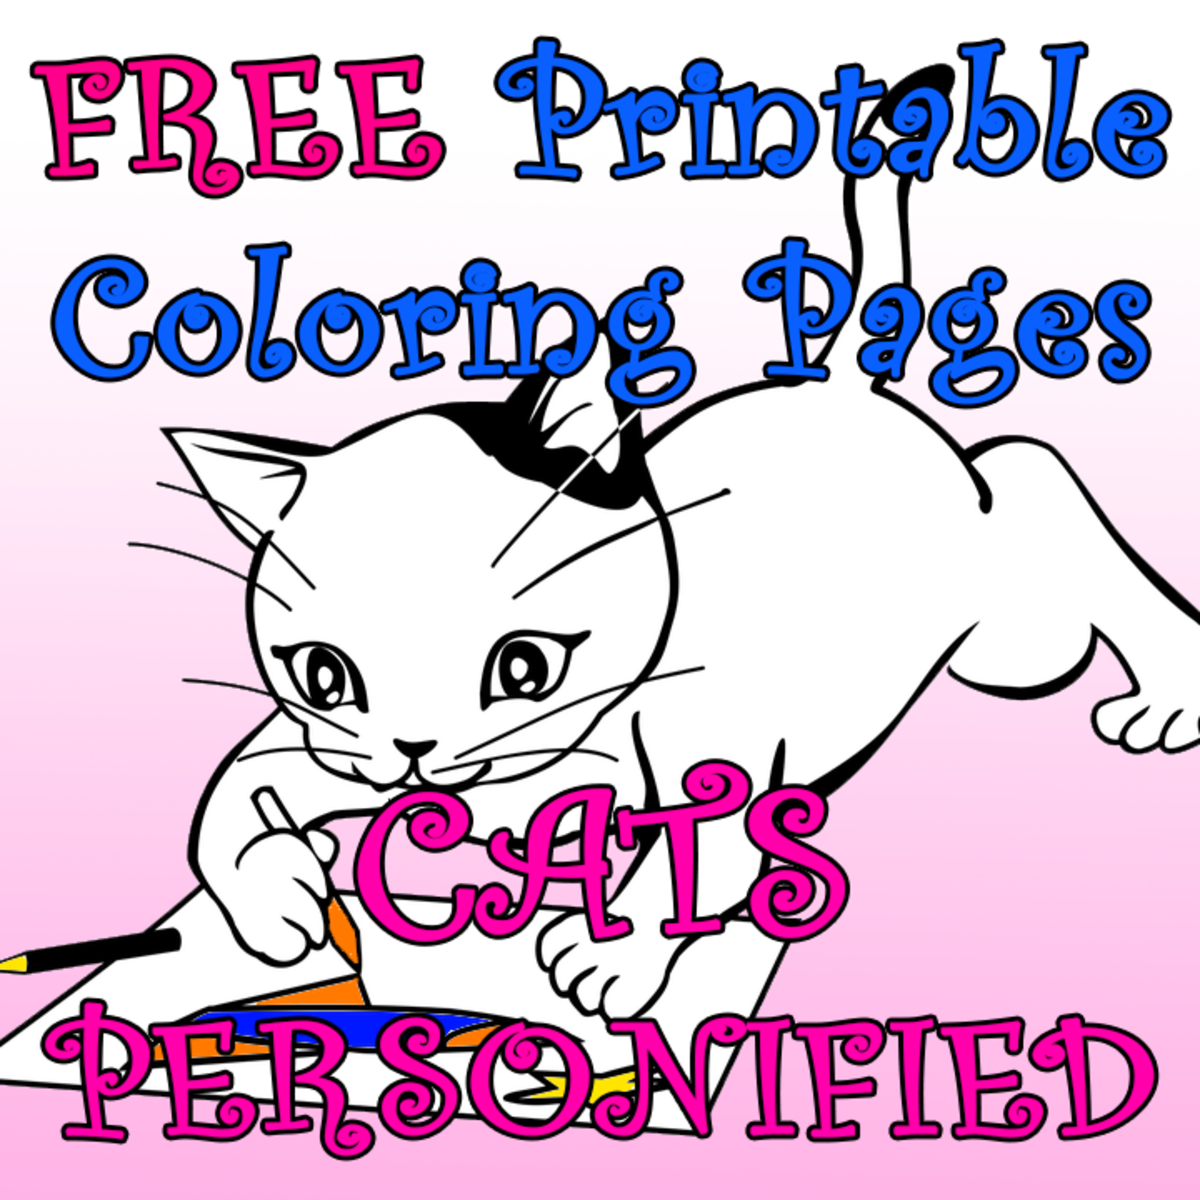 Cats personified 10 free printable coloring pages for kids hubpages